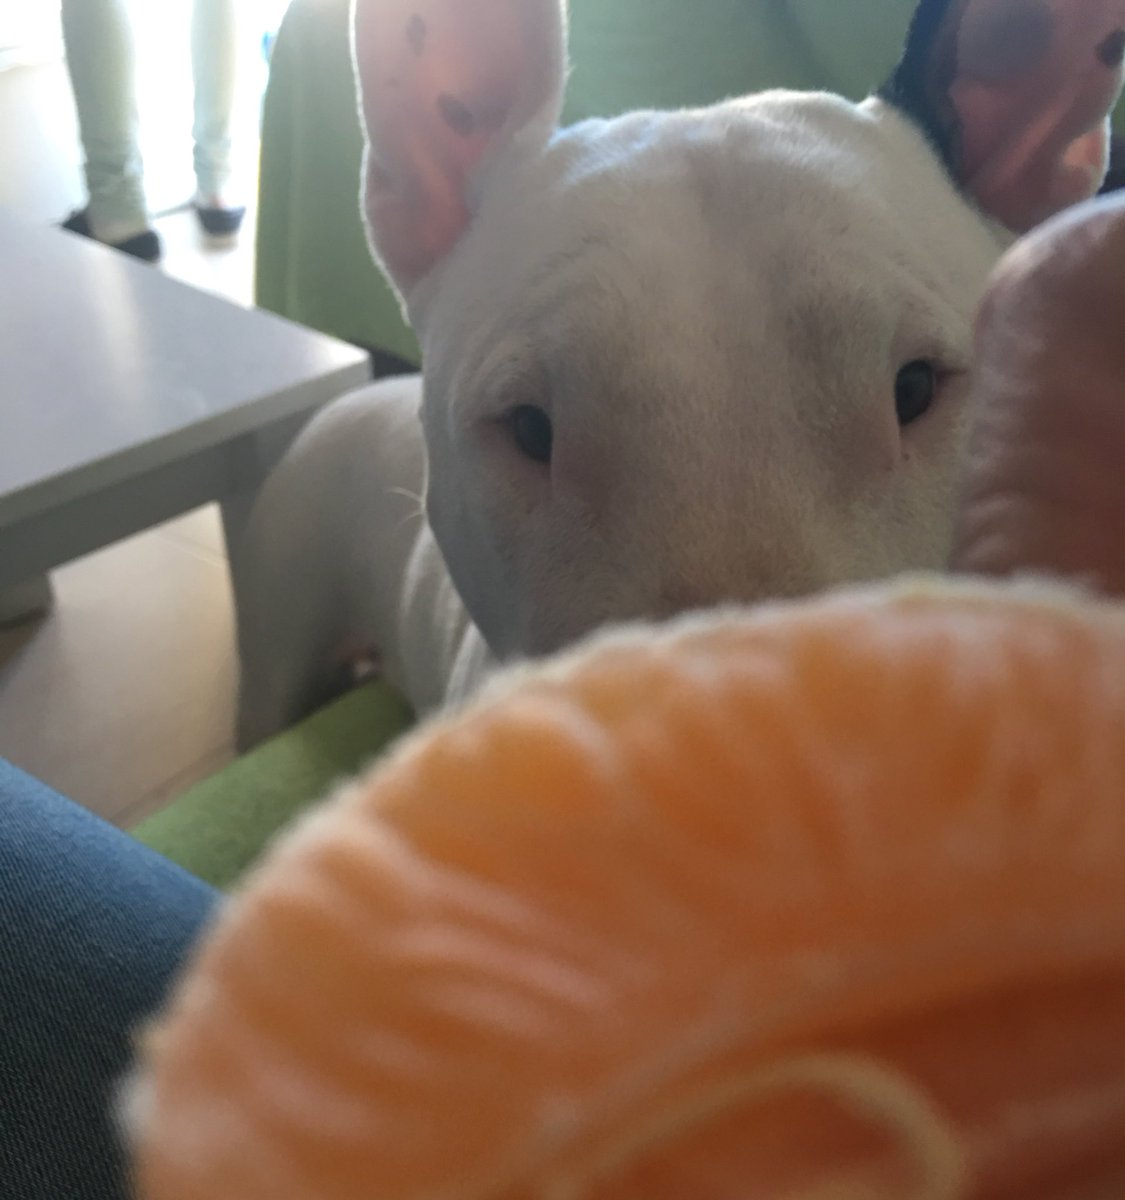 Dame, dame, dame, dame, dame  // Give me, give me, give me, give me, give me  // #bullterrier <br>http://pic.twitter.com/yM8o5Rp7UT